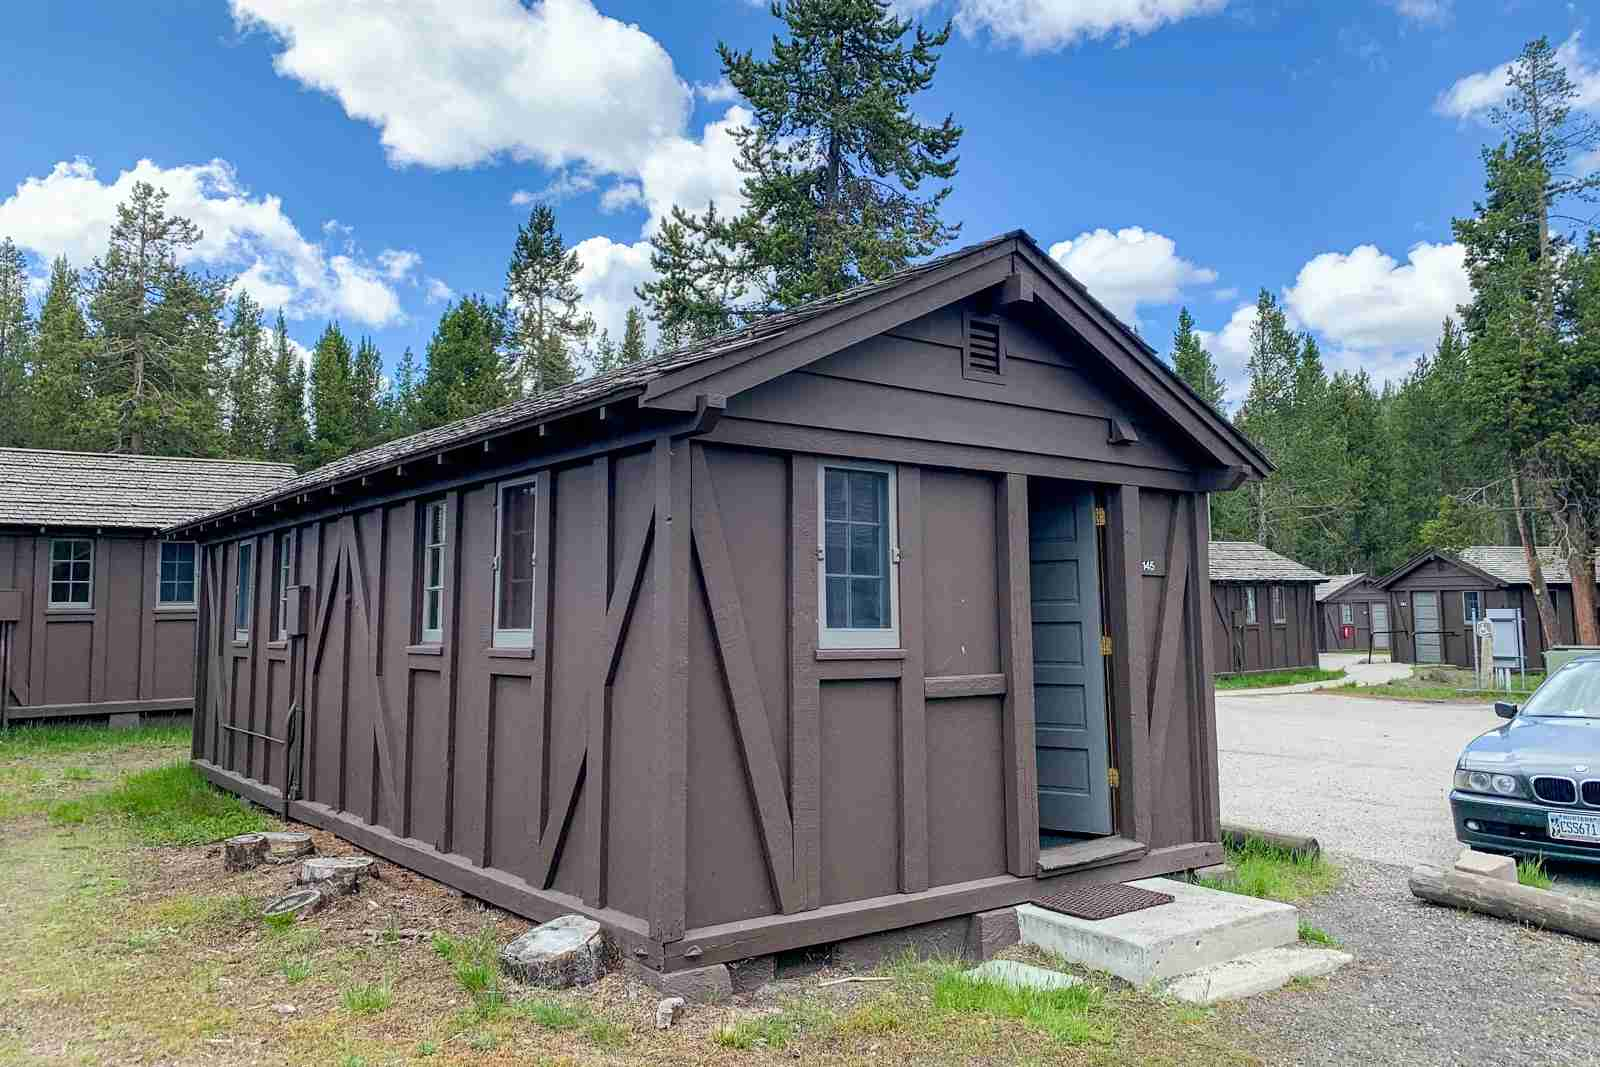 Cabins at Old Faithful Lodge in Yellowstone National Park. (Photo by Clint Henderson/The Points Guy)